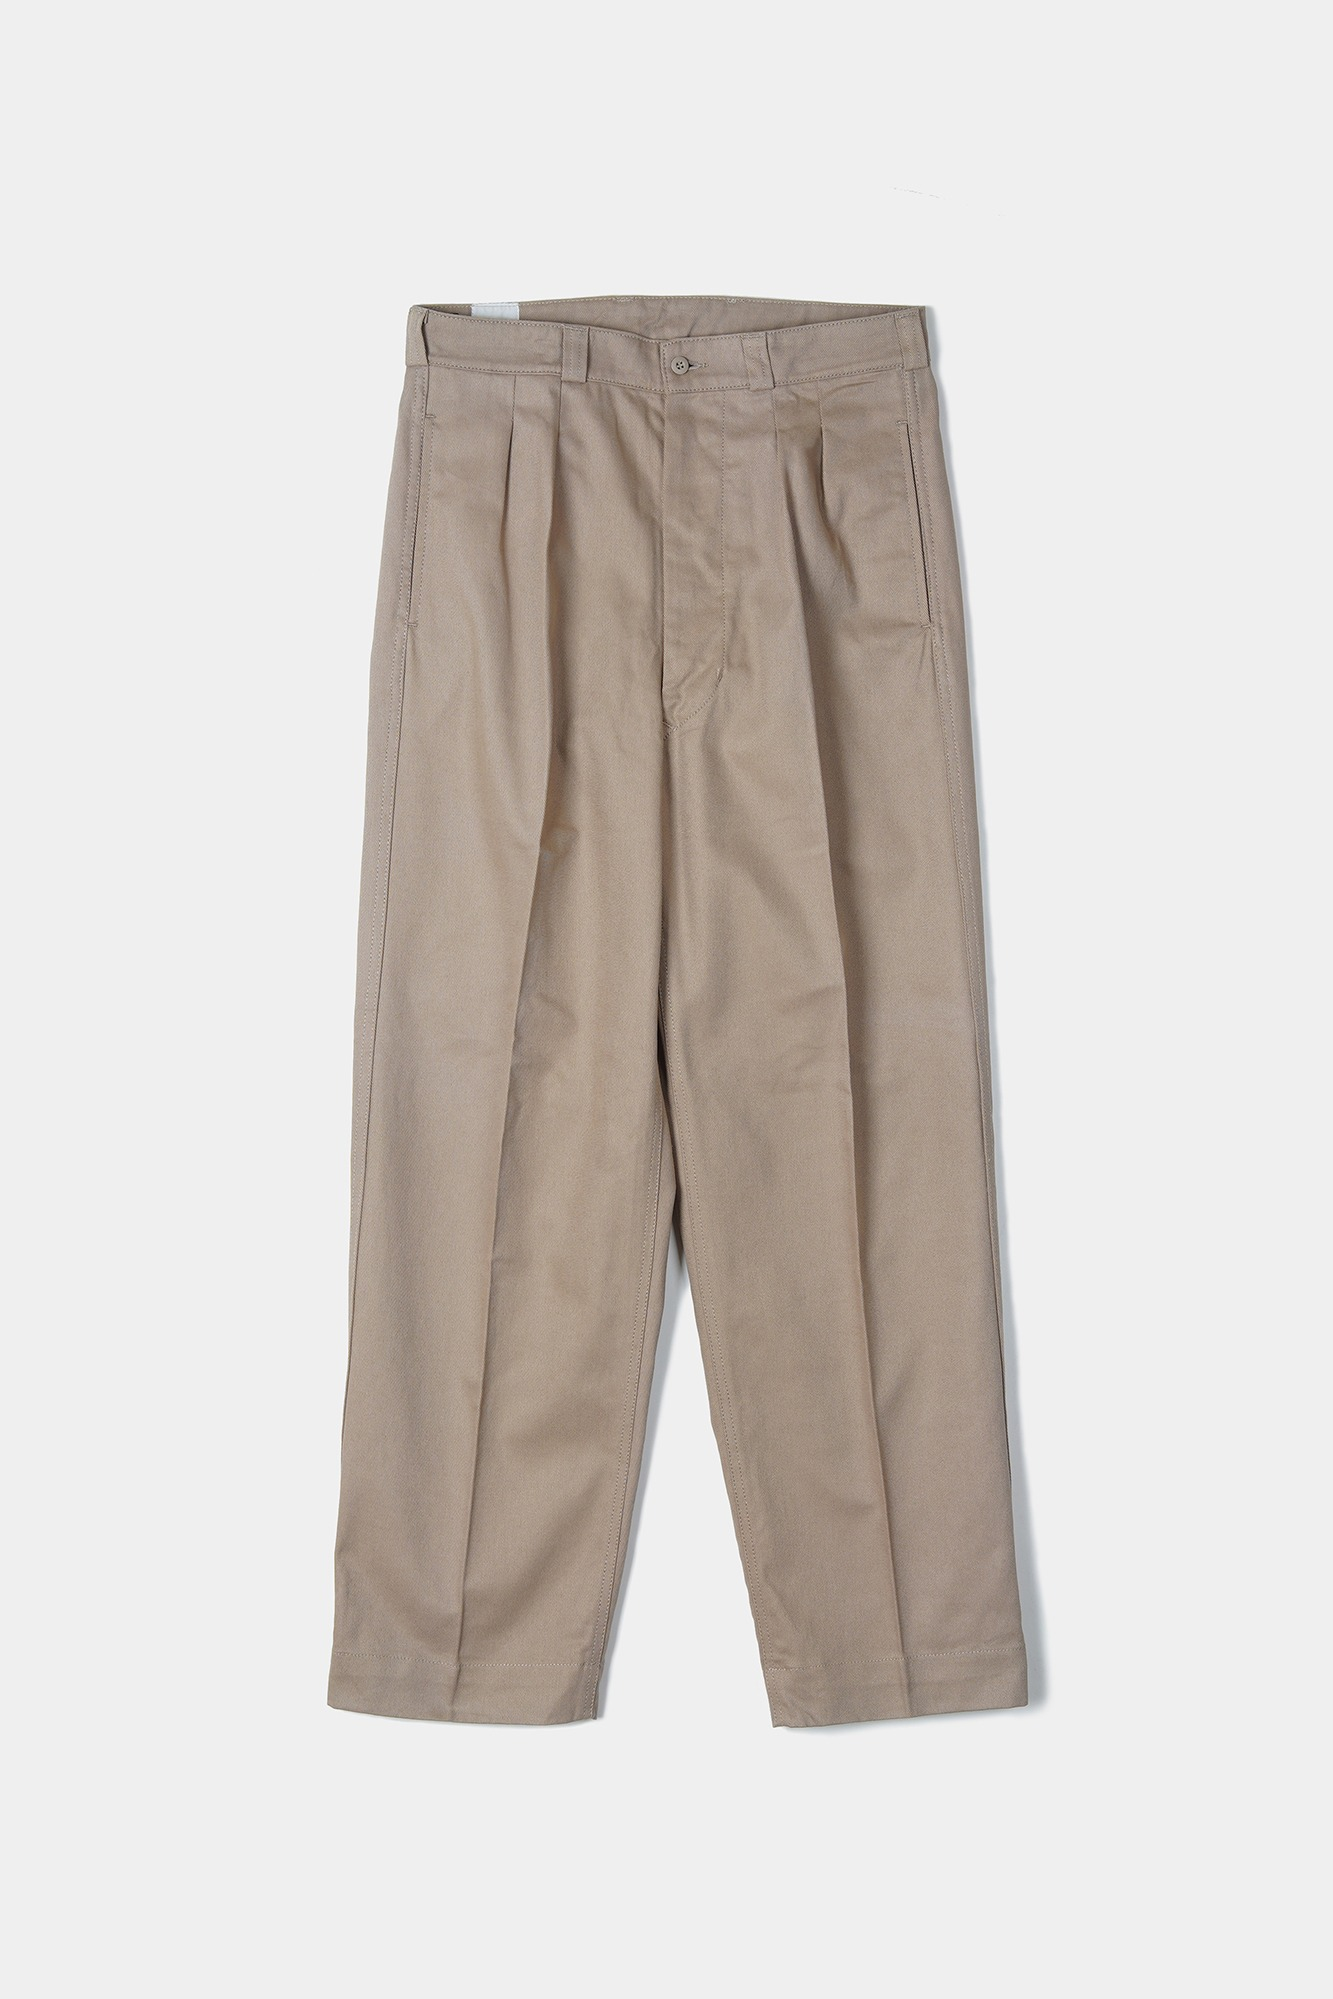 "YMCL KY French Military M52 Chino Pants ""Khaki"""